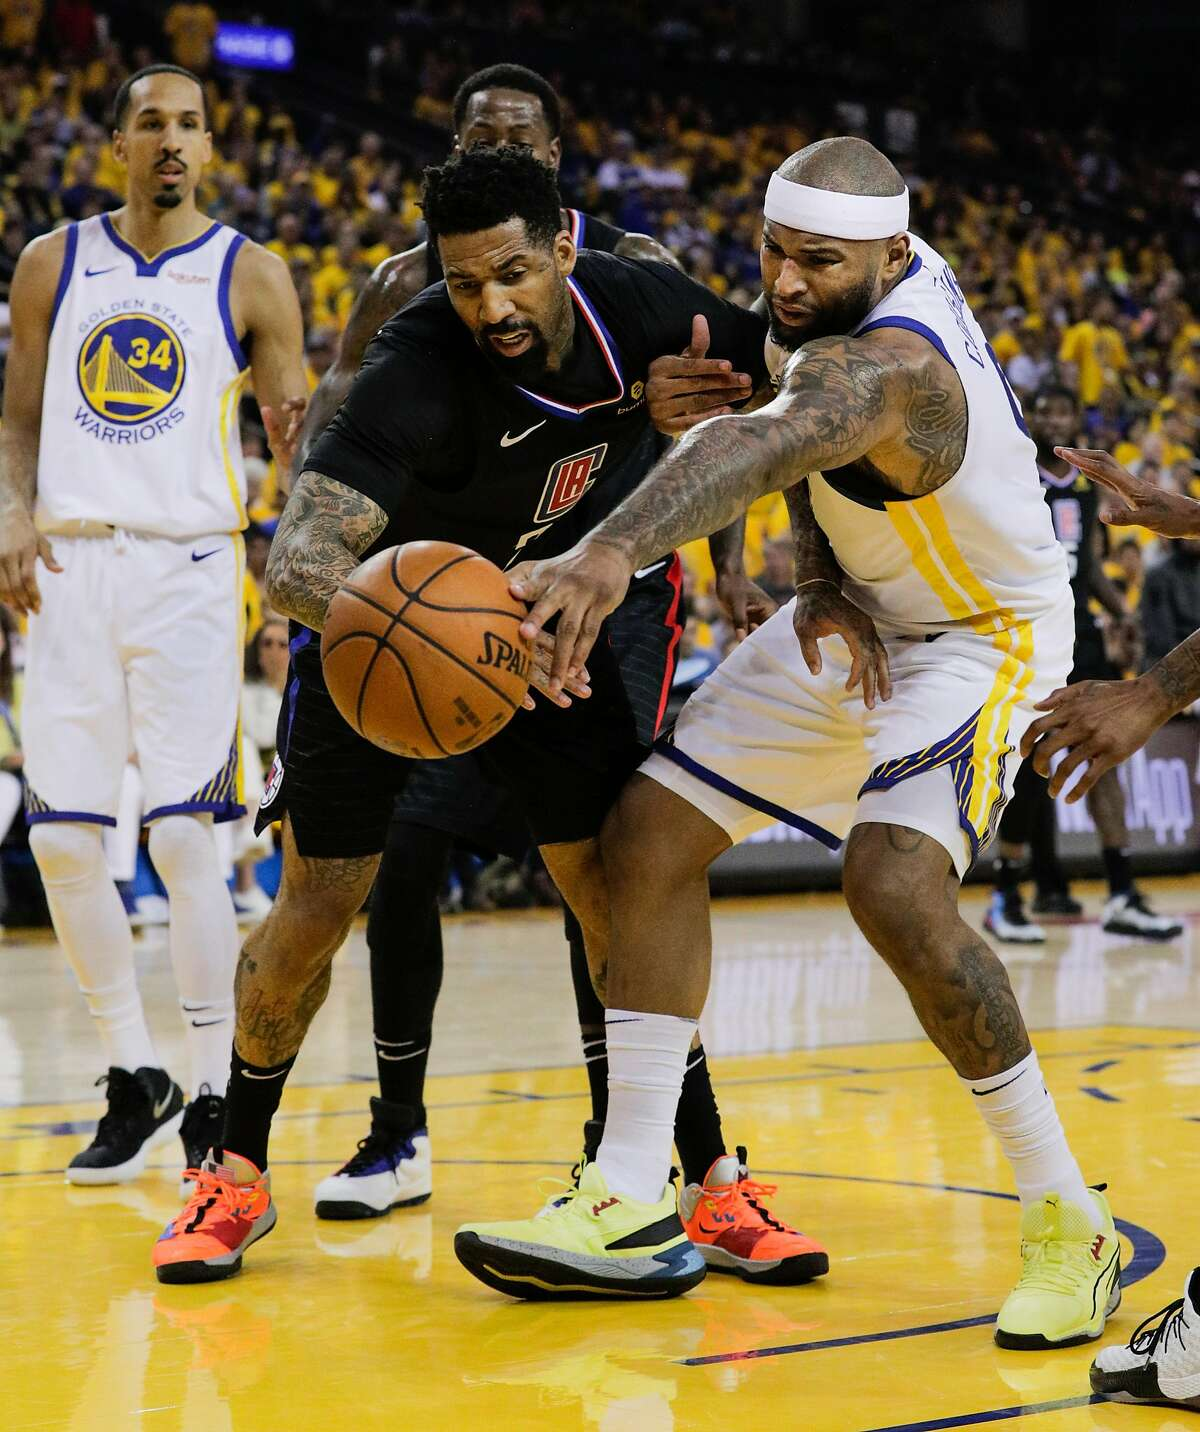 Golden State Warriors DeMarcus Cousins fights Los Angeles Clippers Wilson Chandler for a rebound in the second quarter during game 1 of the Western Conference Playoffs between the Golden State Warriors and the Los Angeles Clippers at Oracle Arena on Saturday, April 13, 2019 in Oakland, Calif.